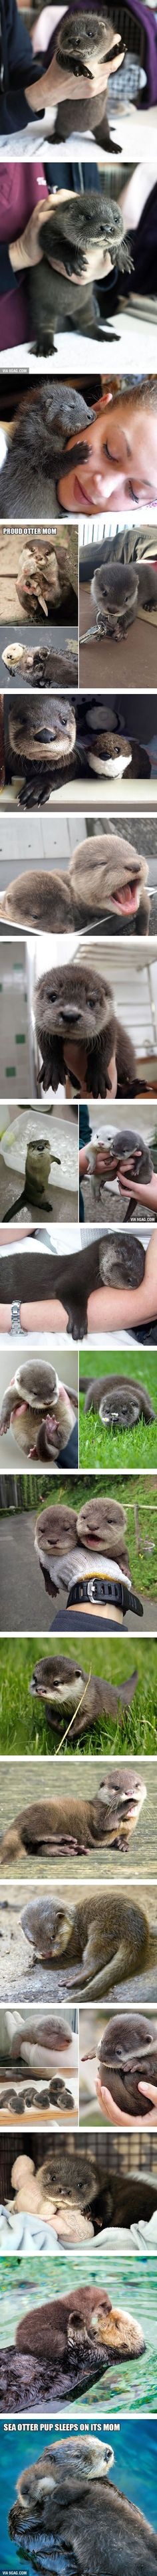 #otters #cute #animals #baby